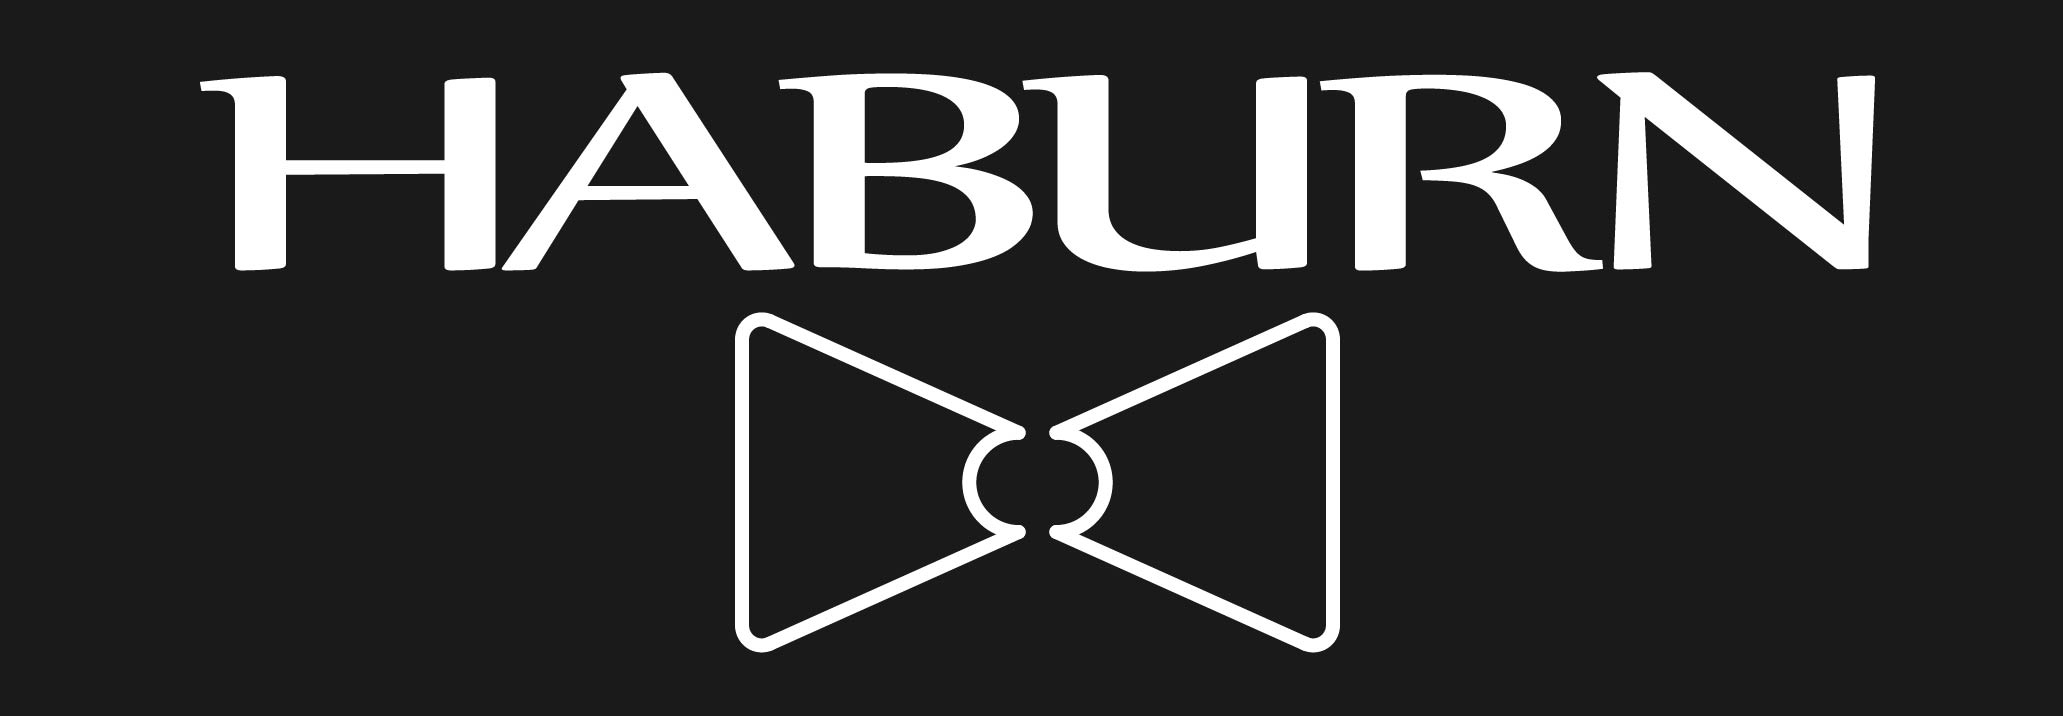 Haburn Knives - Handmade Custom Kitchen Knives and Tools